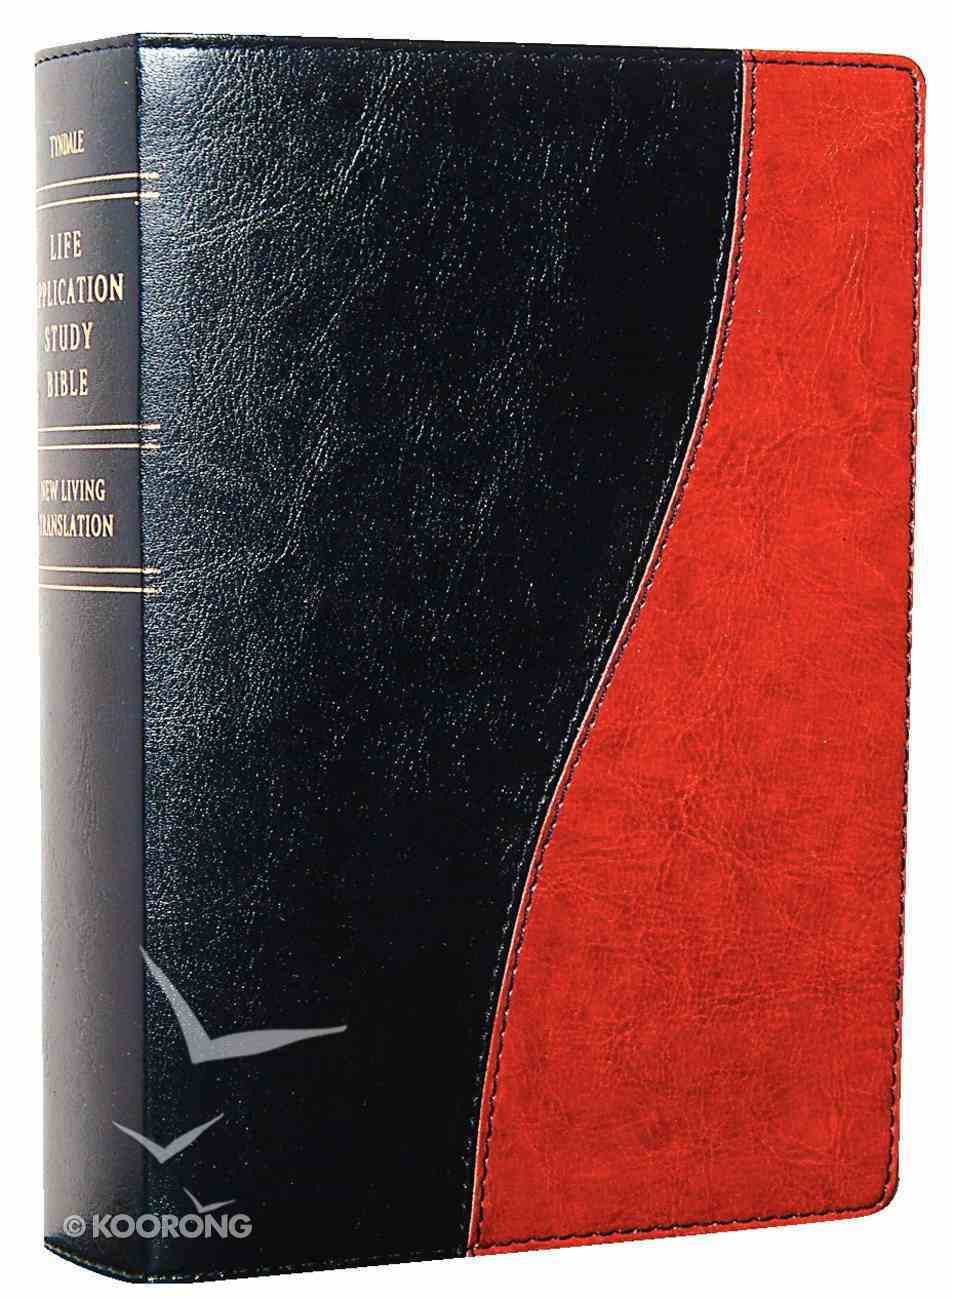 NLT Life Application Study Personal Black/Tan (Red Letter Edition) Imitation Leather